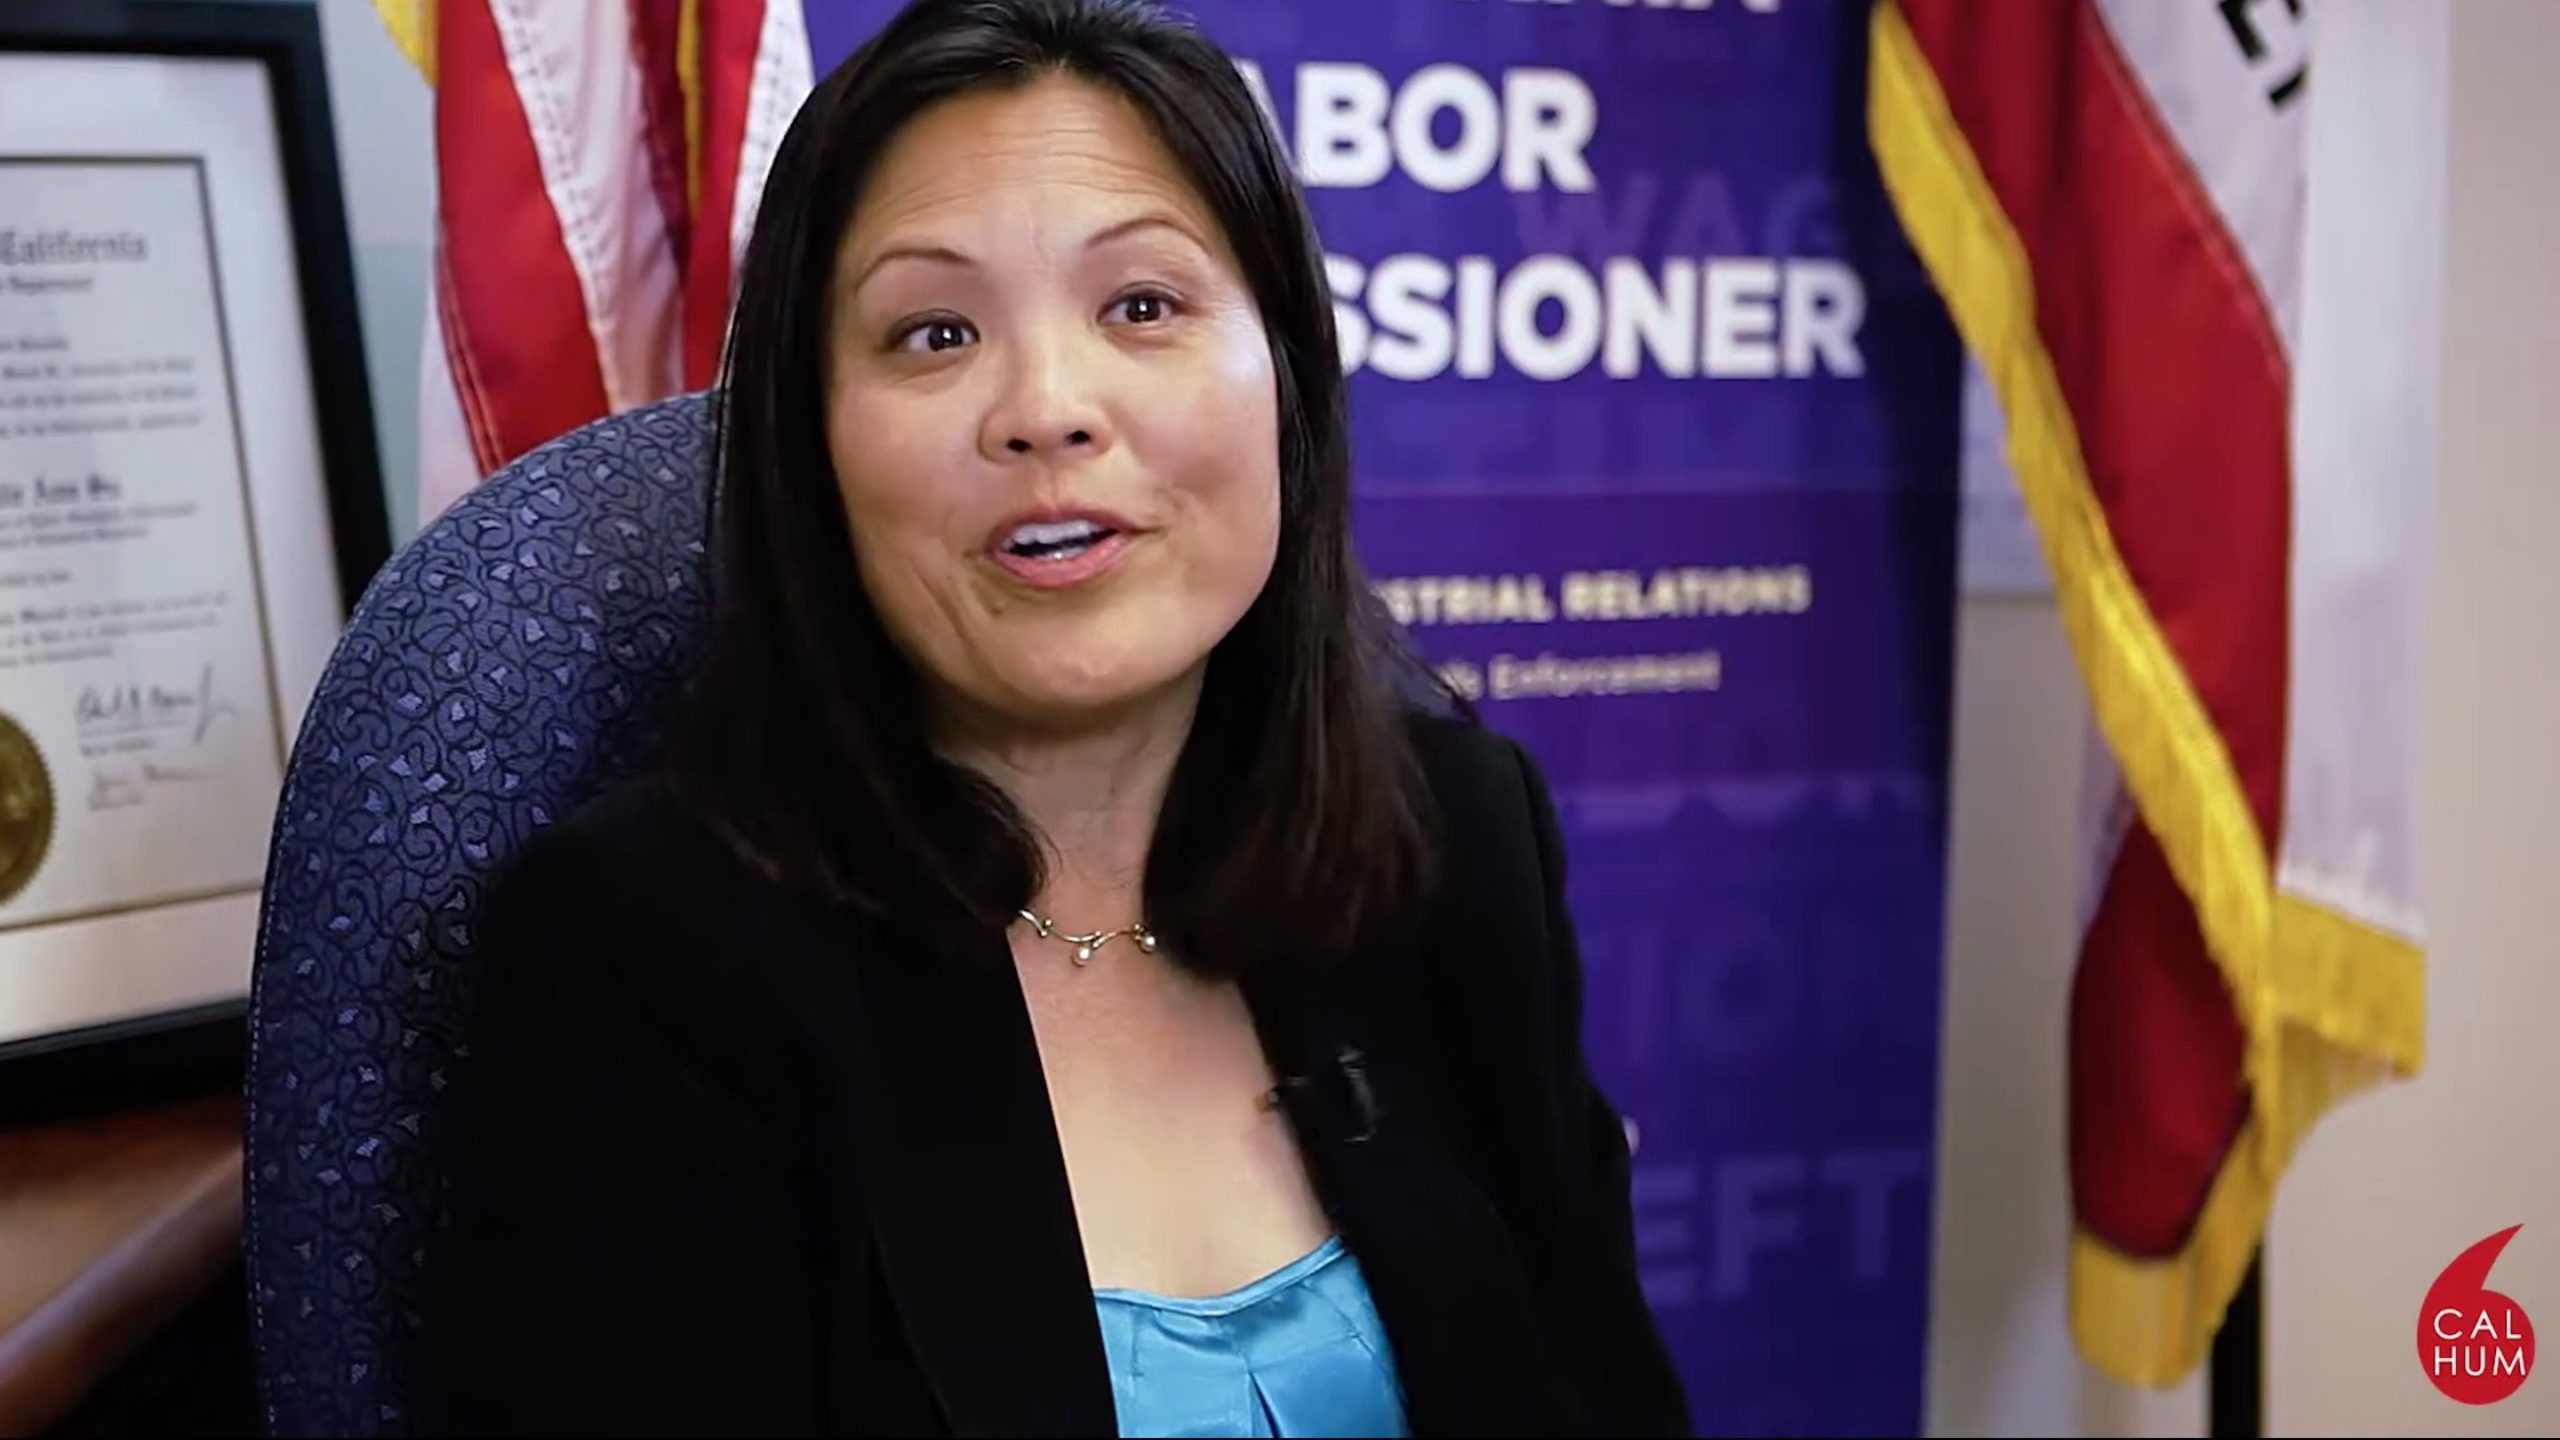 Julie Su speaks in a video message on Dec. 8, 2016 when she served as California labor commissioner. (California Humanities/Video screenshot/YouTube)